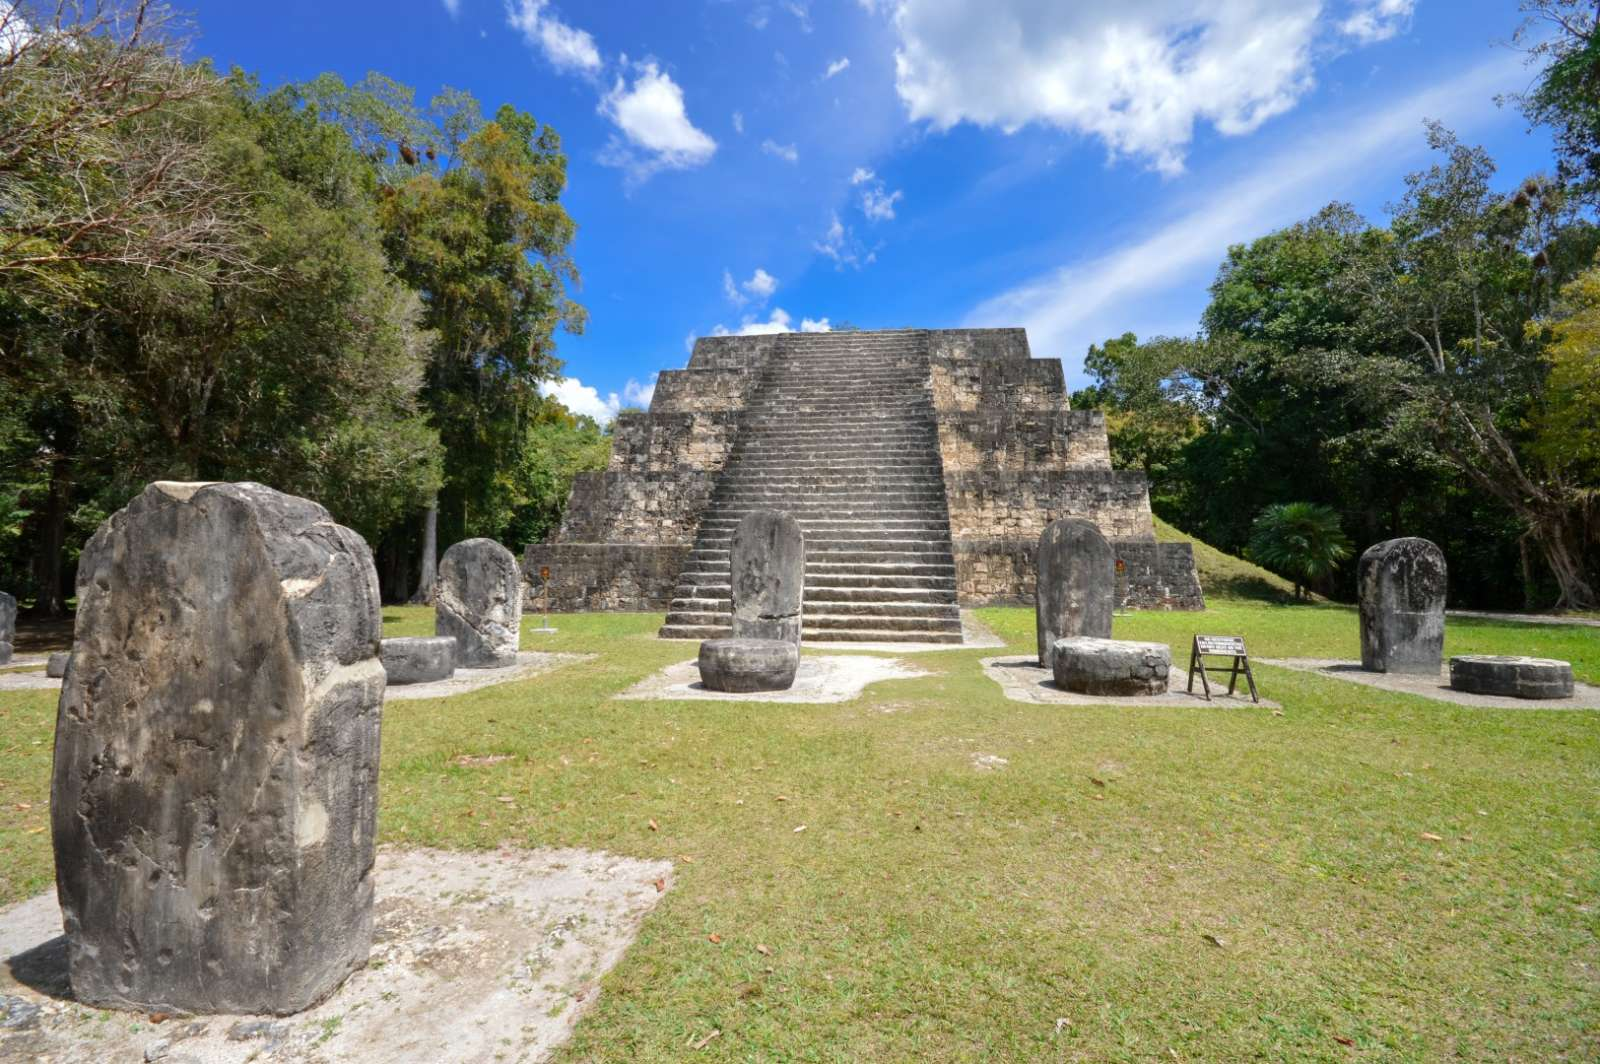 Pyramid and stelae at Tikal, Guatemala